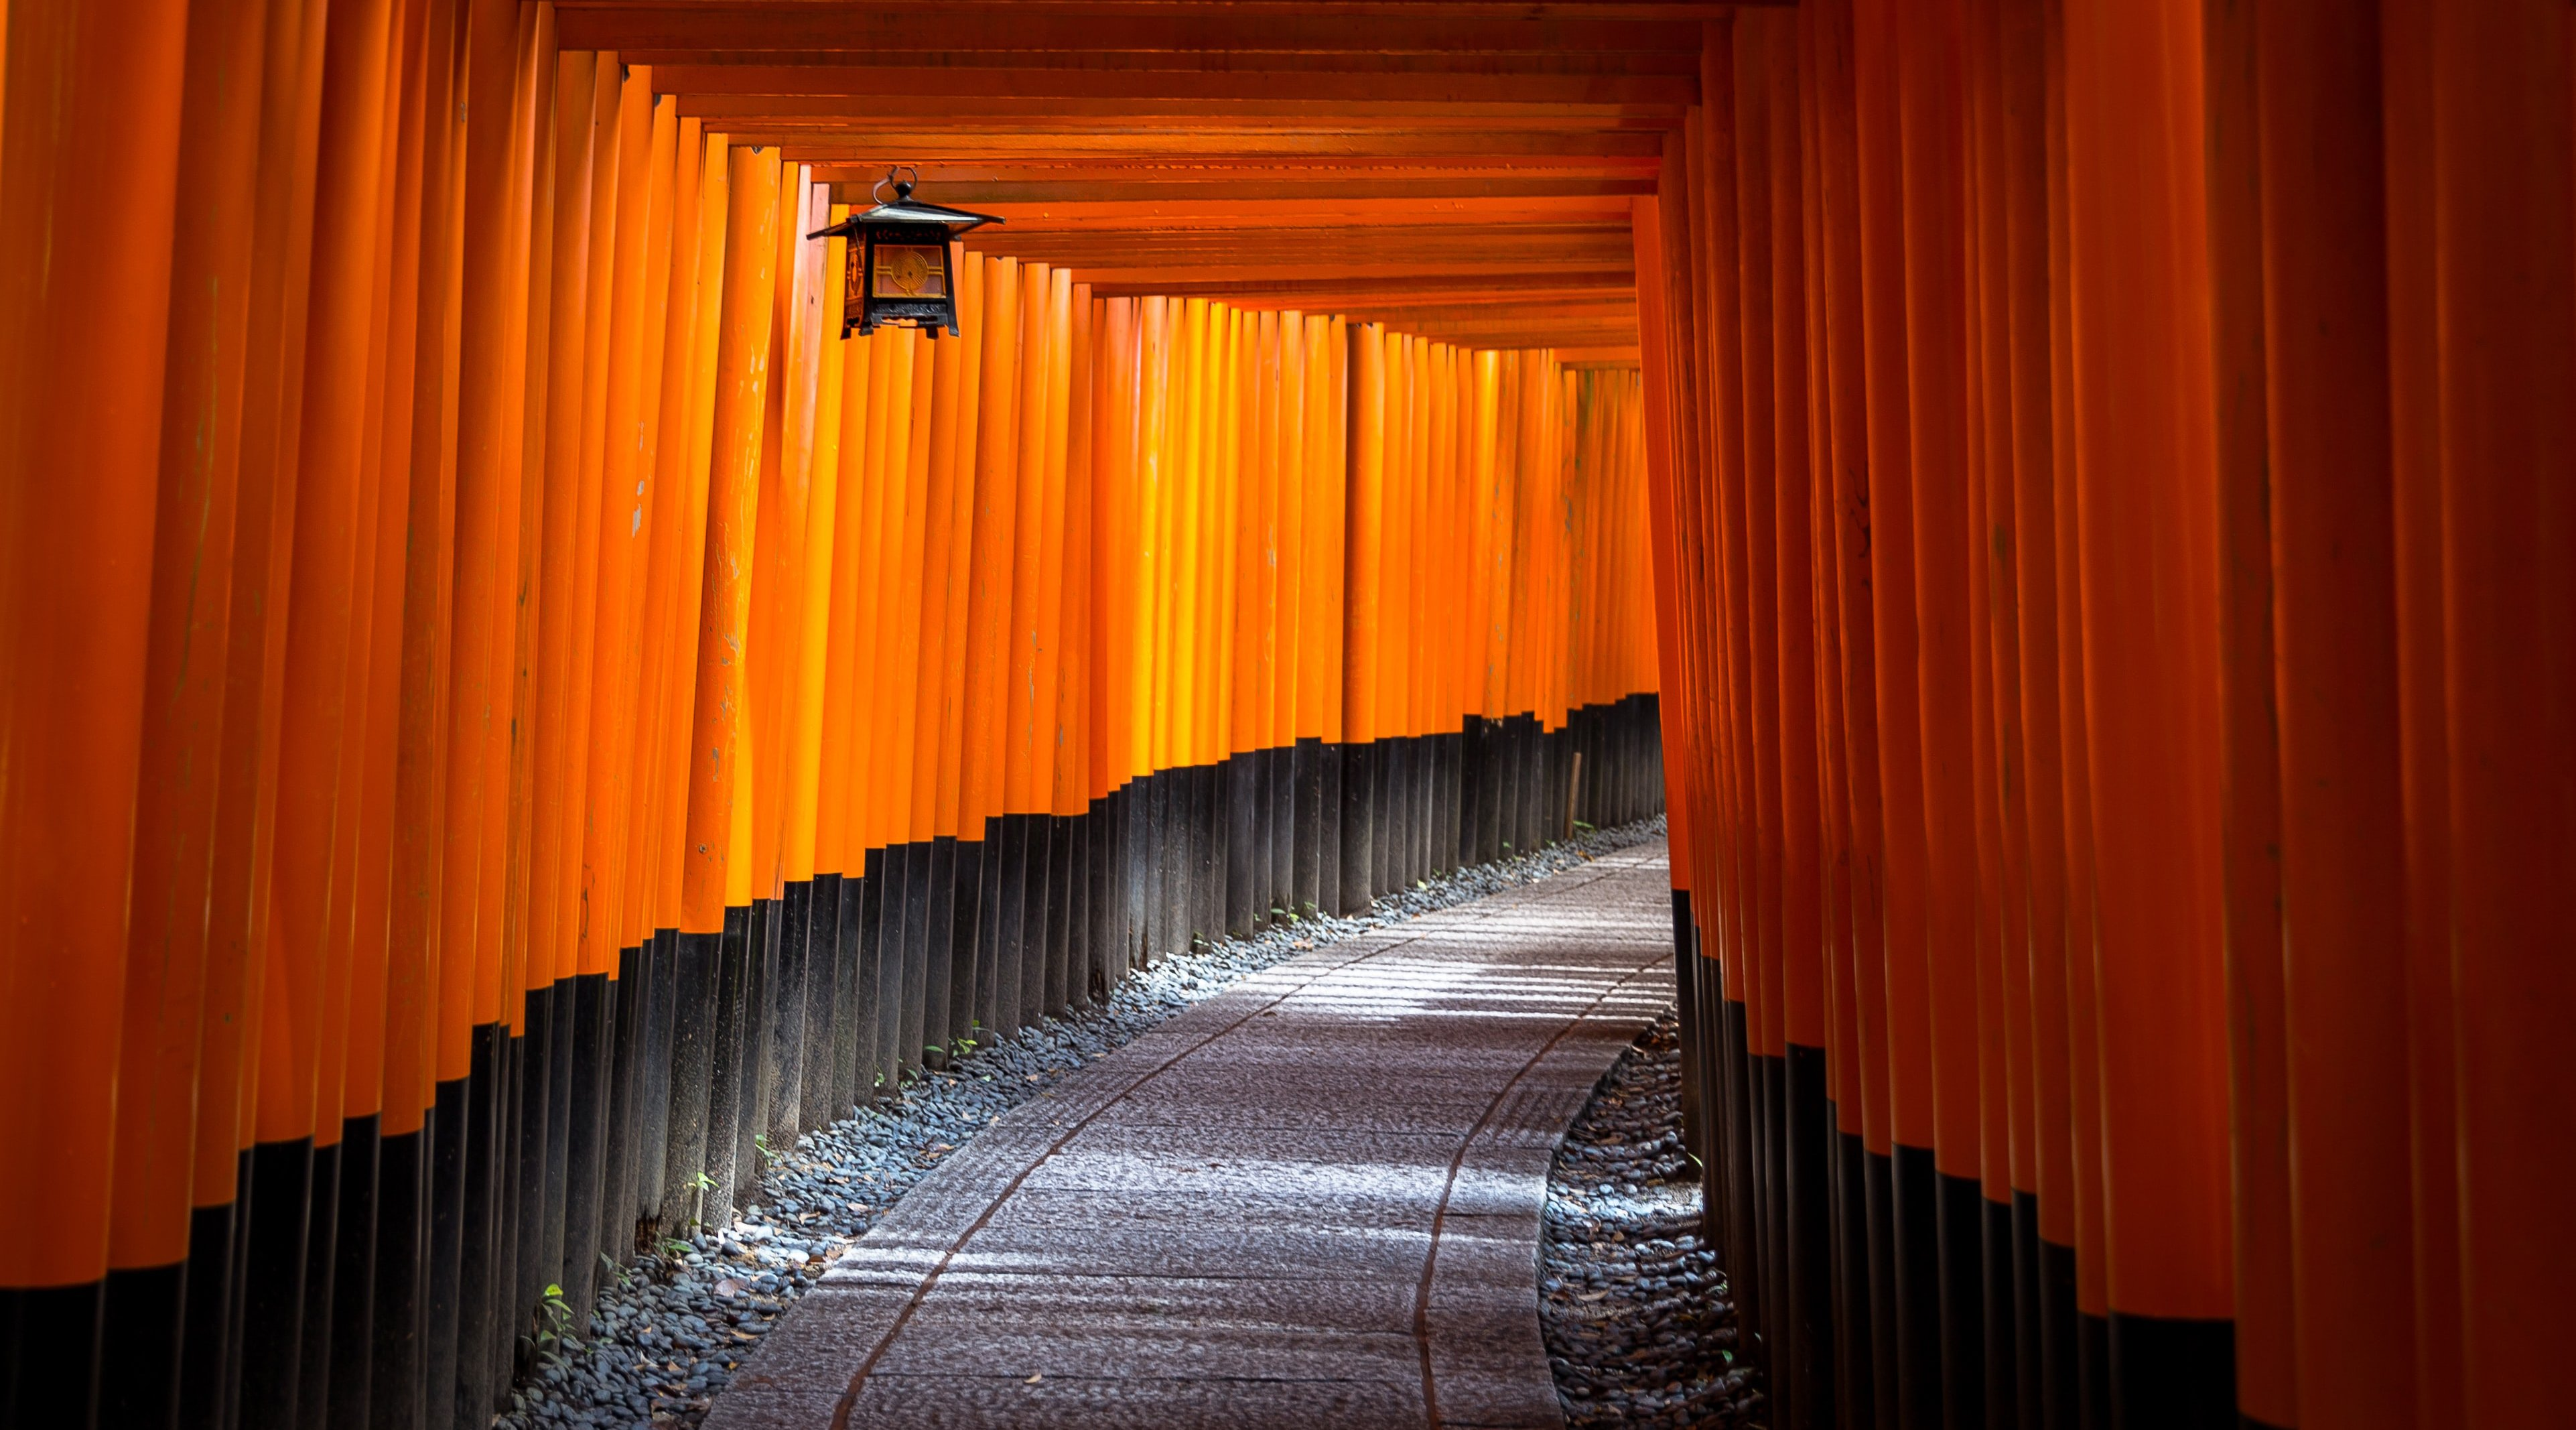 Sequence of orange, square arches, lined up one after another with a hanging lantern.